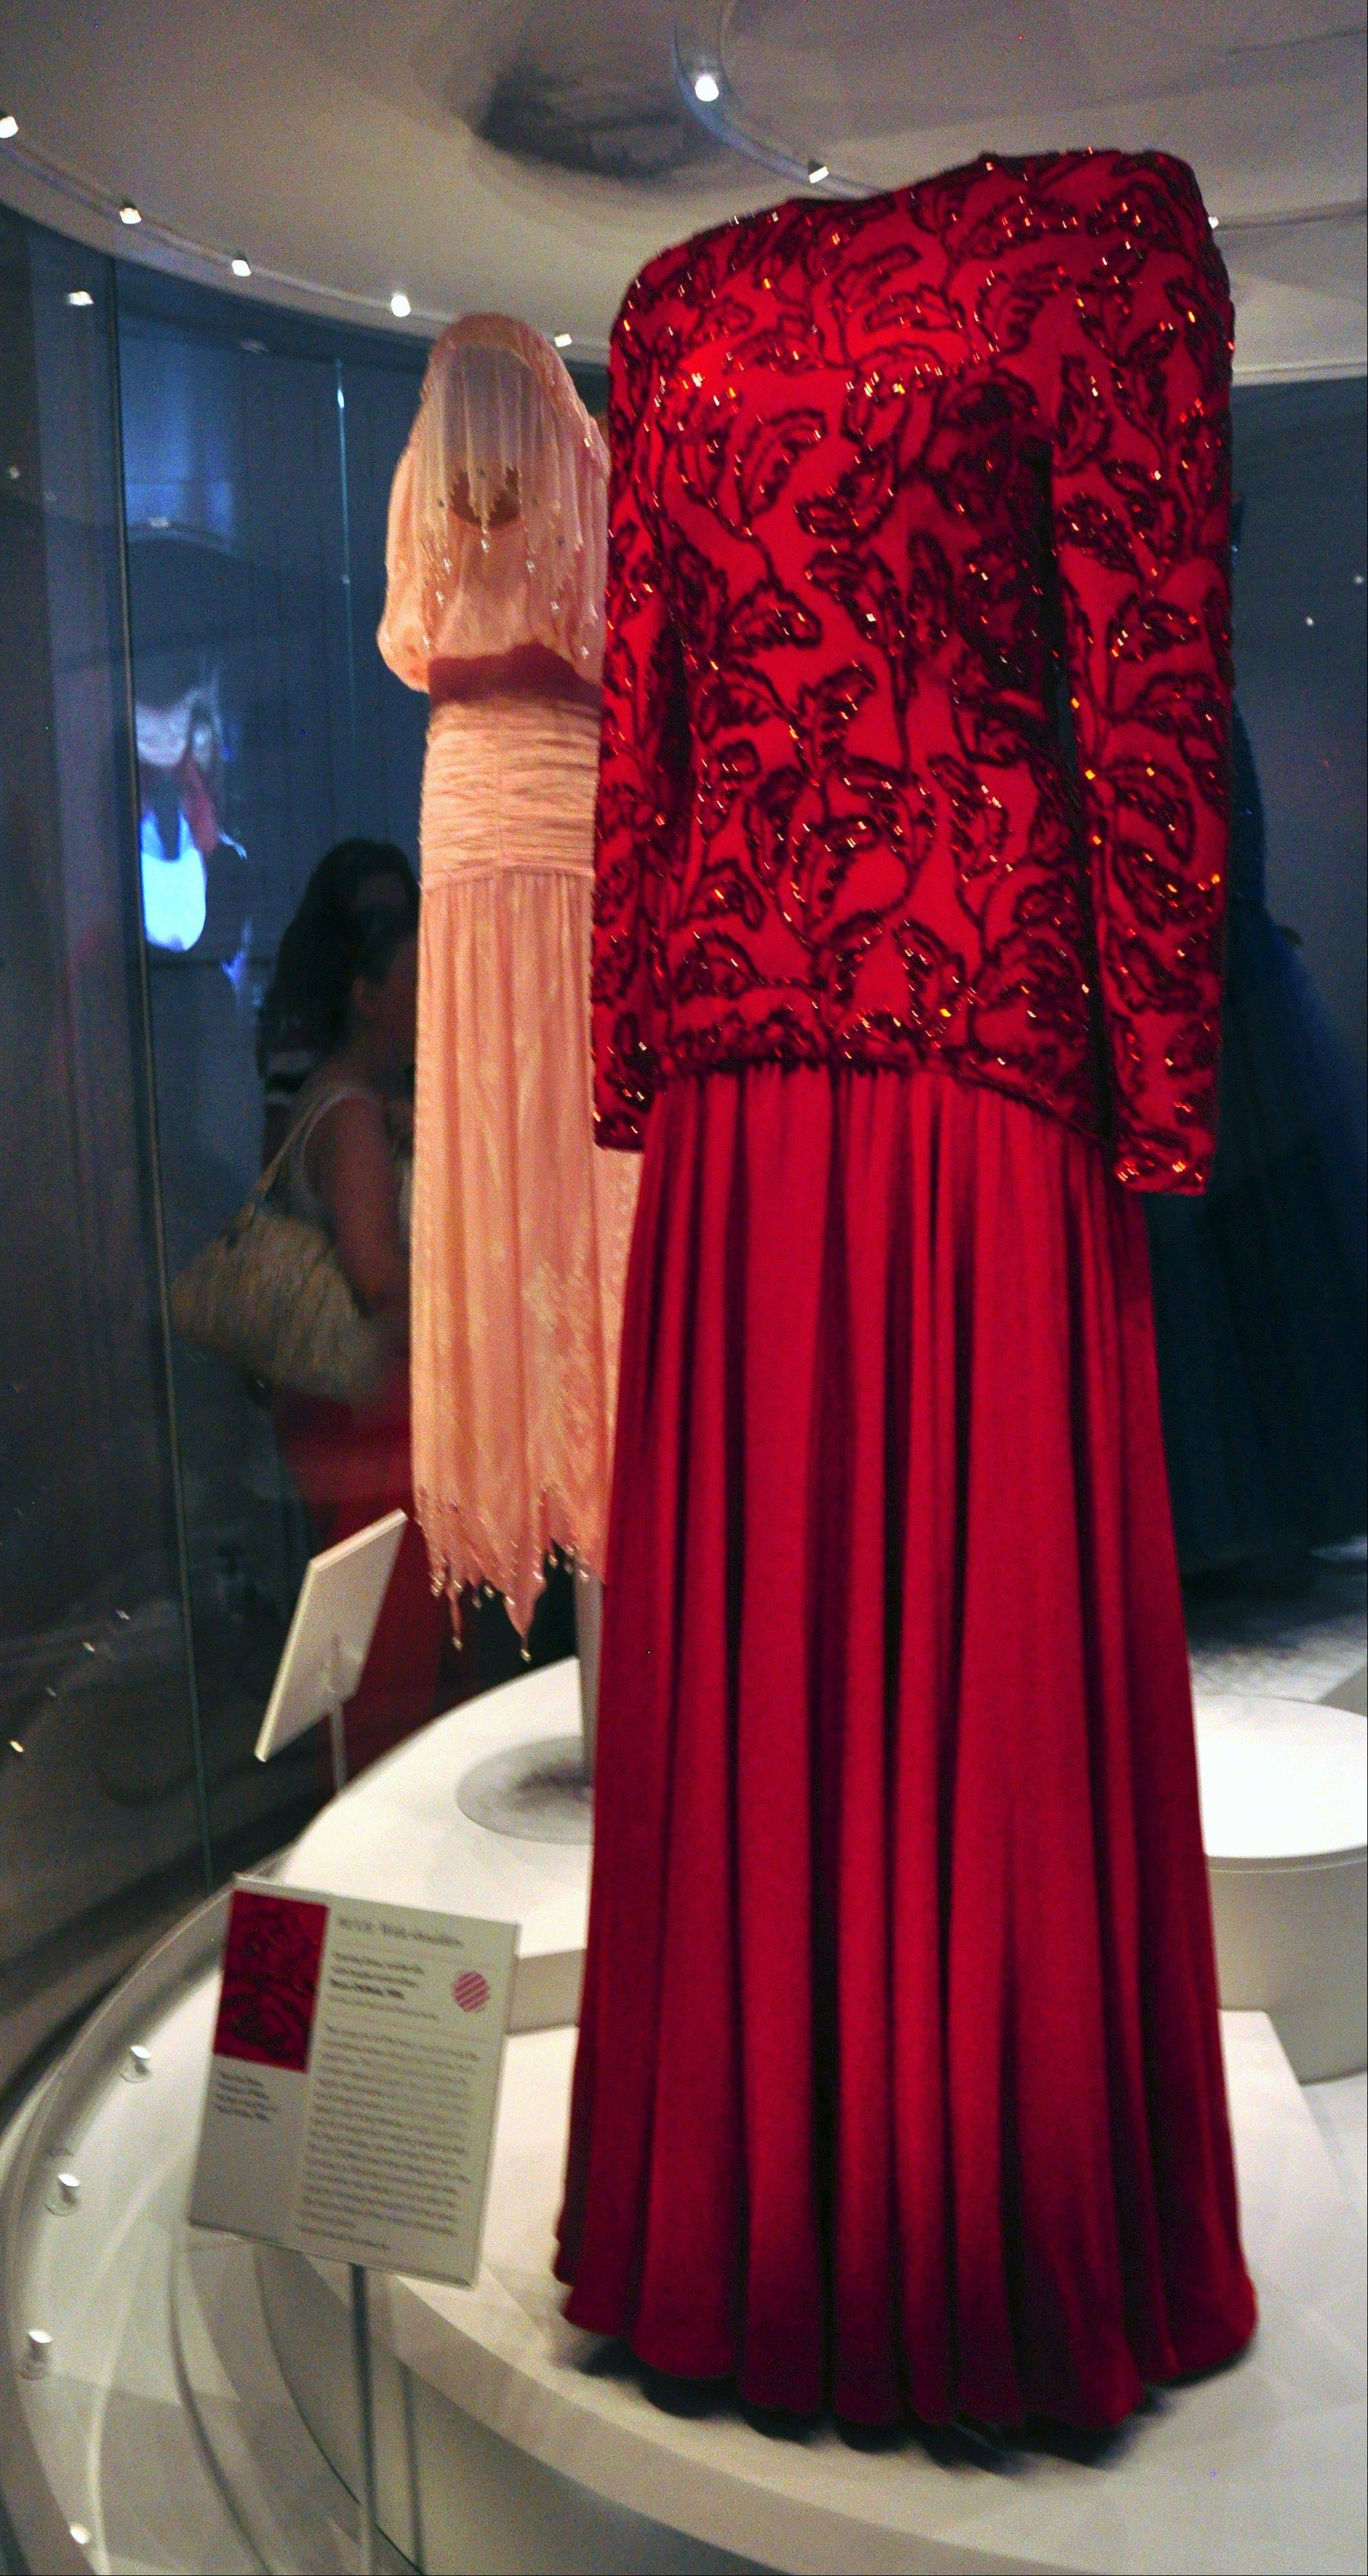 A red evening dress worn by Princess Diana during a royal tour of Saudi Arabia is one of 21 couture dresses in an exhibit at Kensington Palace.